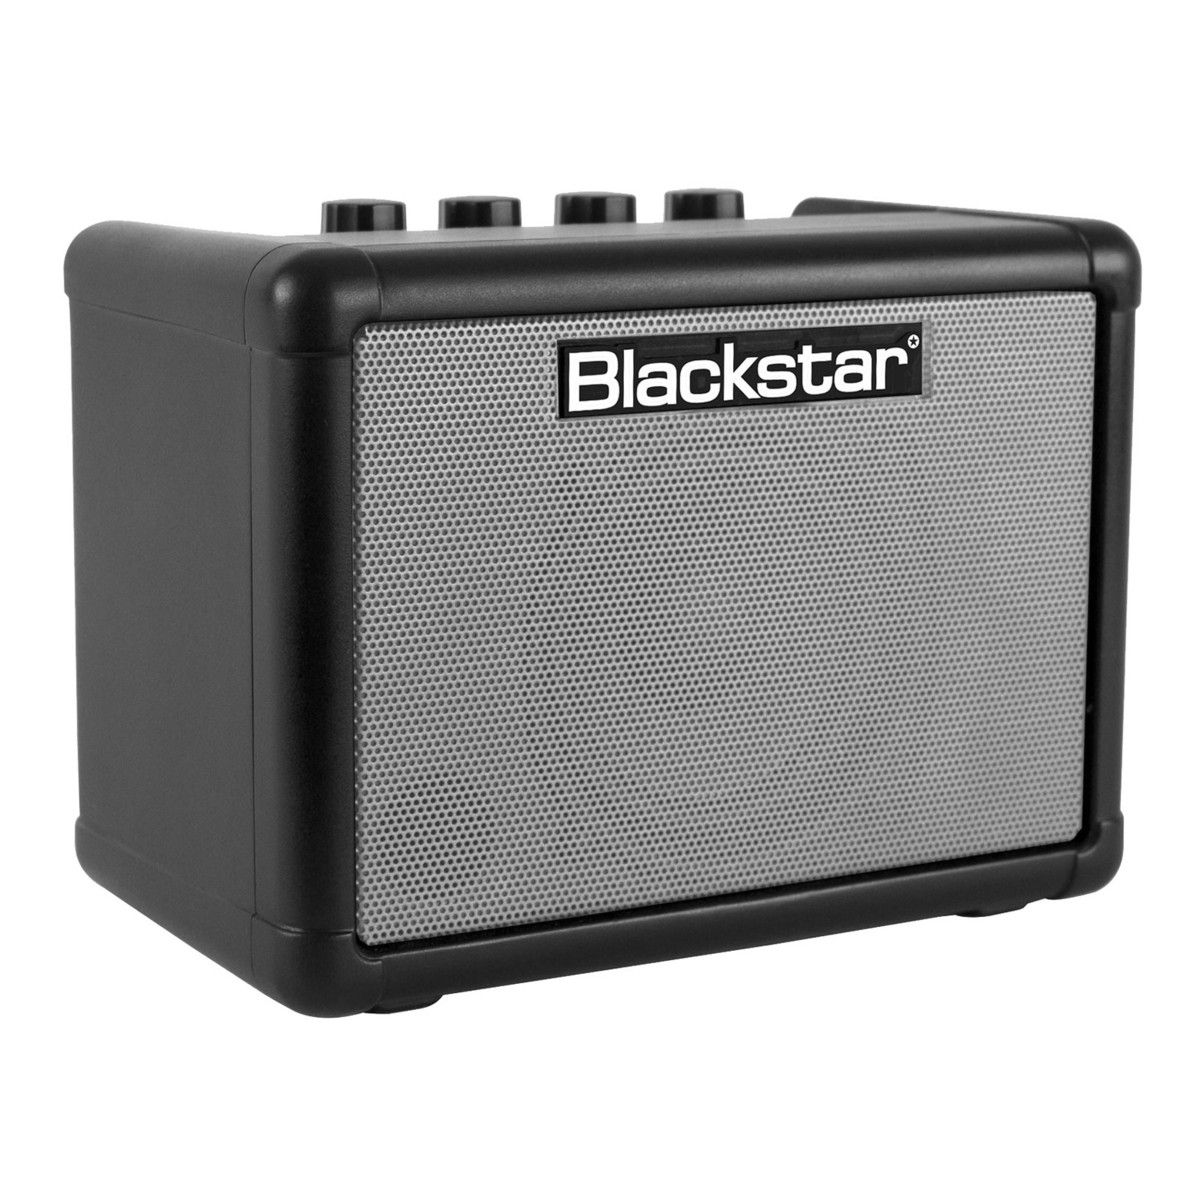 blackstar fly 3 bass compact mini bass guitar amp fly3bass combo amplifier. Black Bedroom Furniture Sets. Home Design Ideas